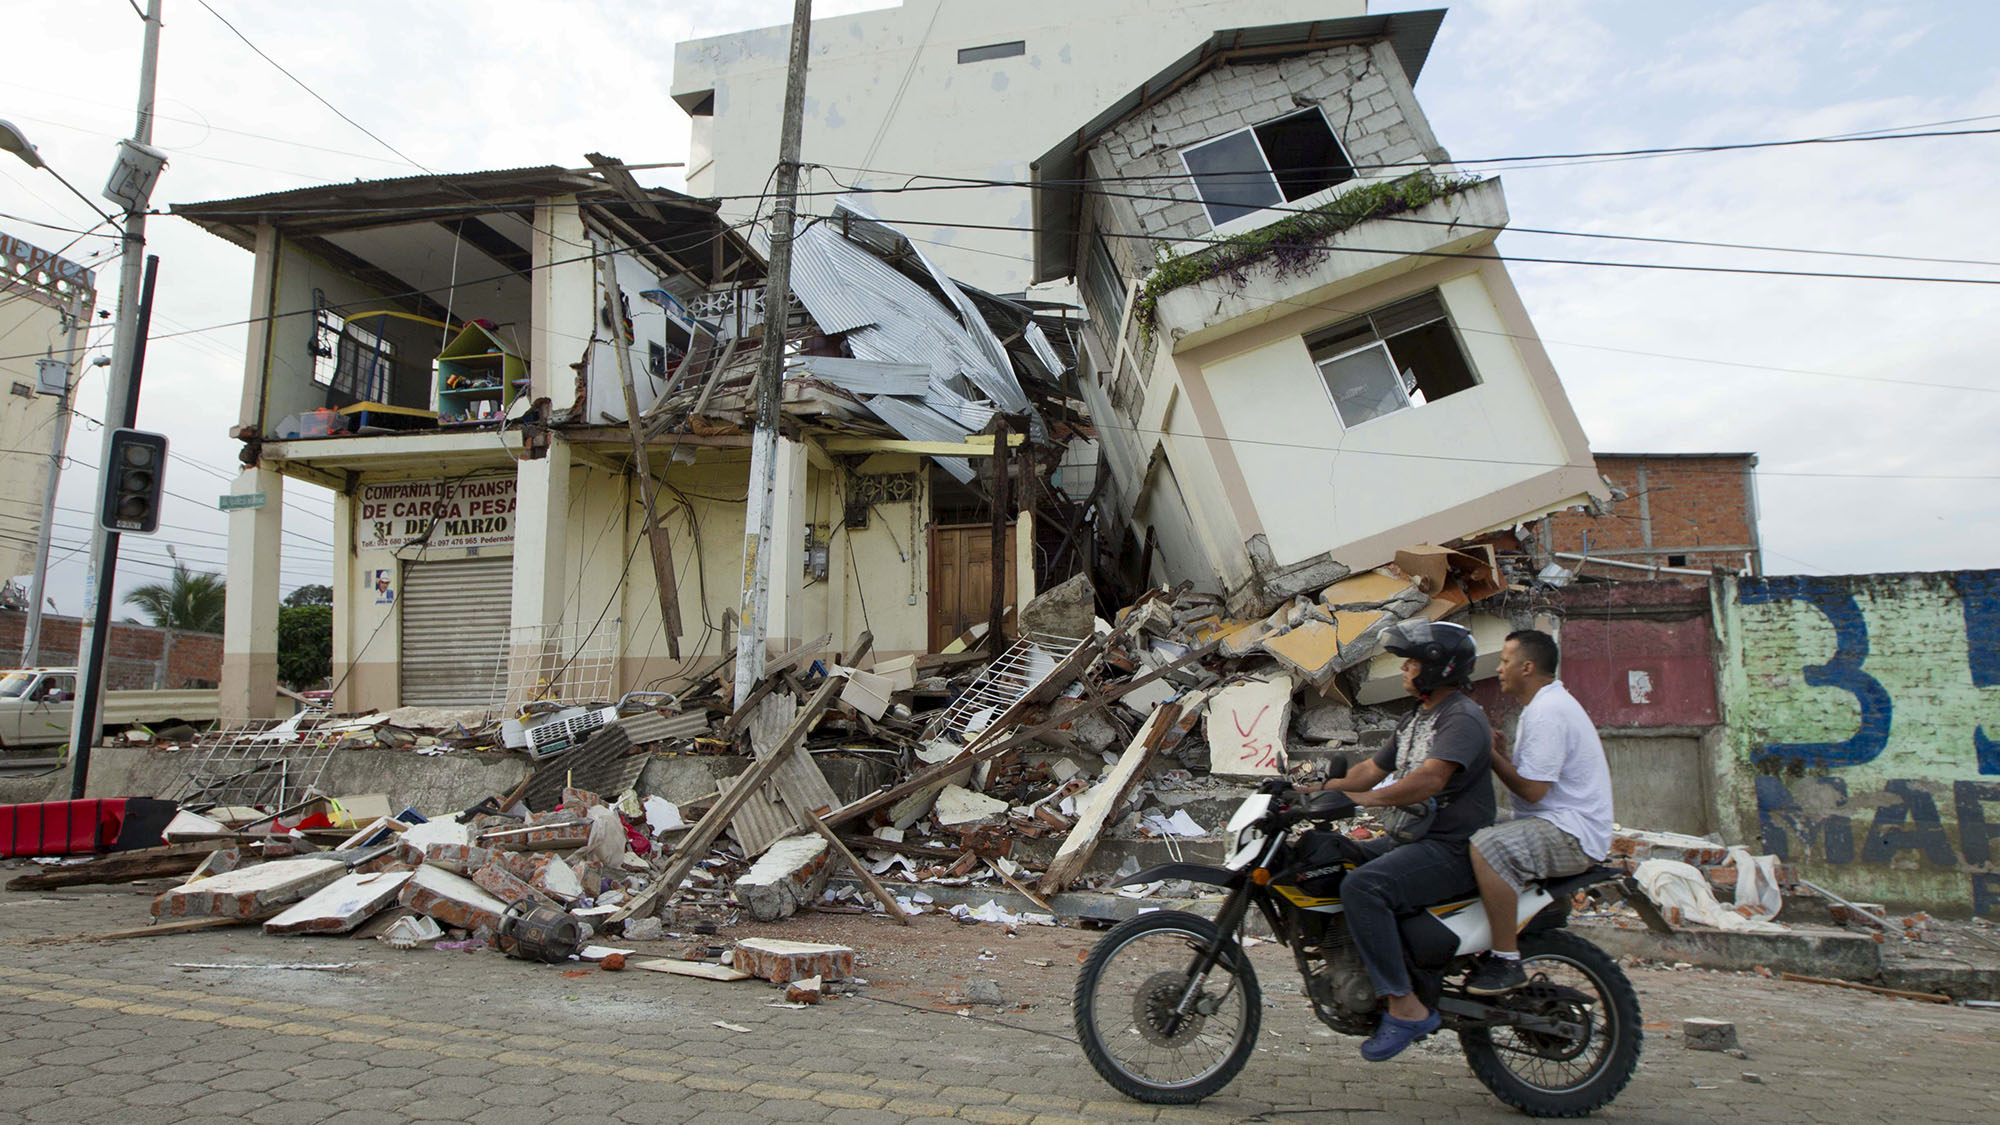 Men ride a motorcycle past damaged buildings in Pedernales, after an earthquake struck off Ecuador's Pacific coast, April 18, 2016. REUTERS/Guillermo Granja TPX IMAGES OF THE DAY      - RTX2AIOR